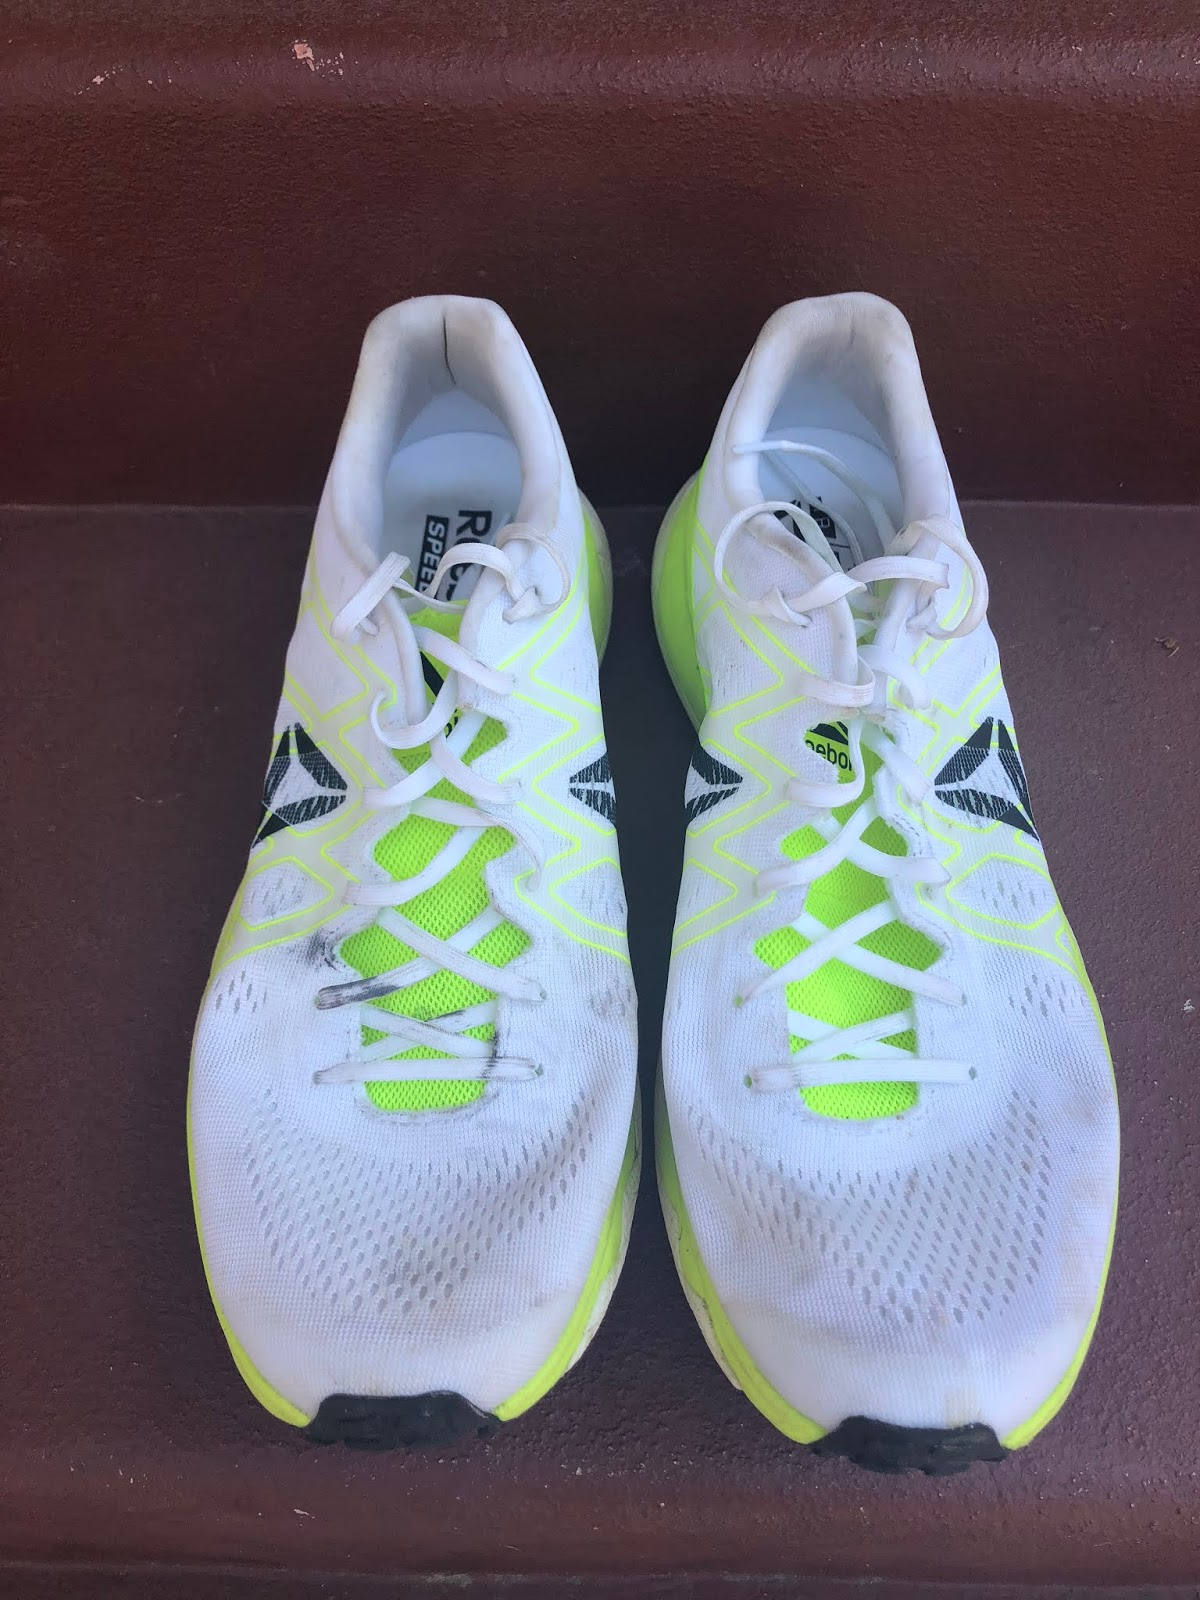 fe65da3c449 ... not offered a free pair or compensation for this review. I put at least  50-75 miles on trainers and 10-25 miles on racing flats prior to reviewing  them.